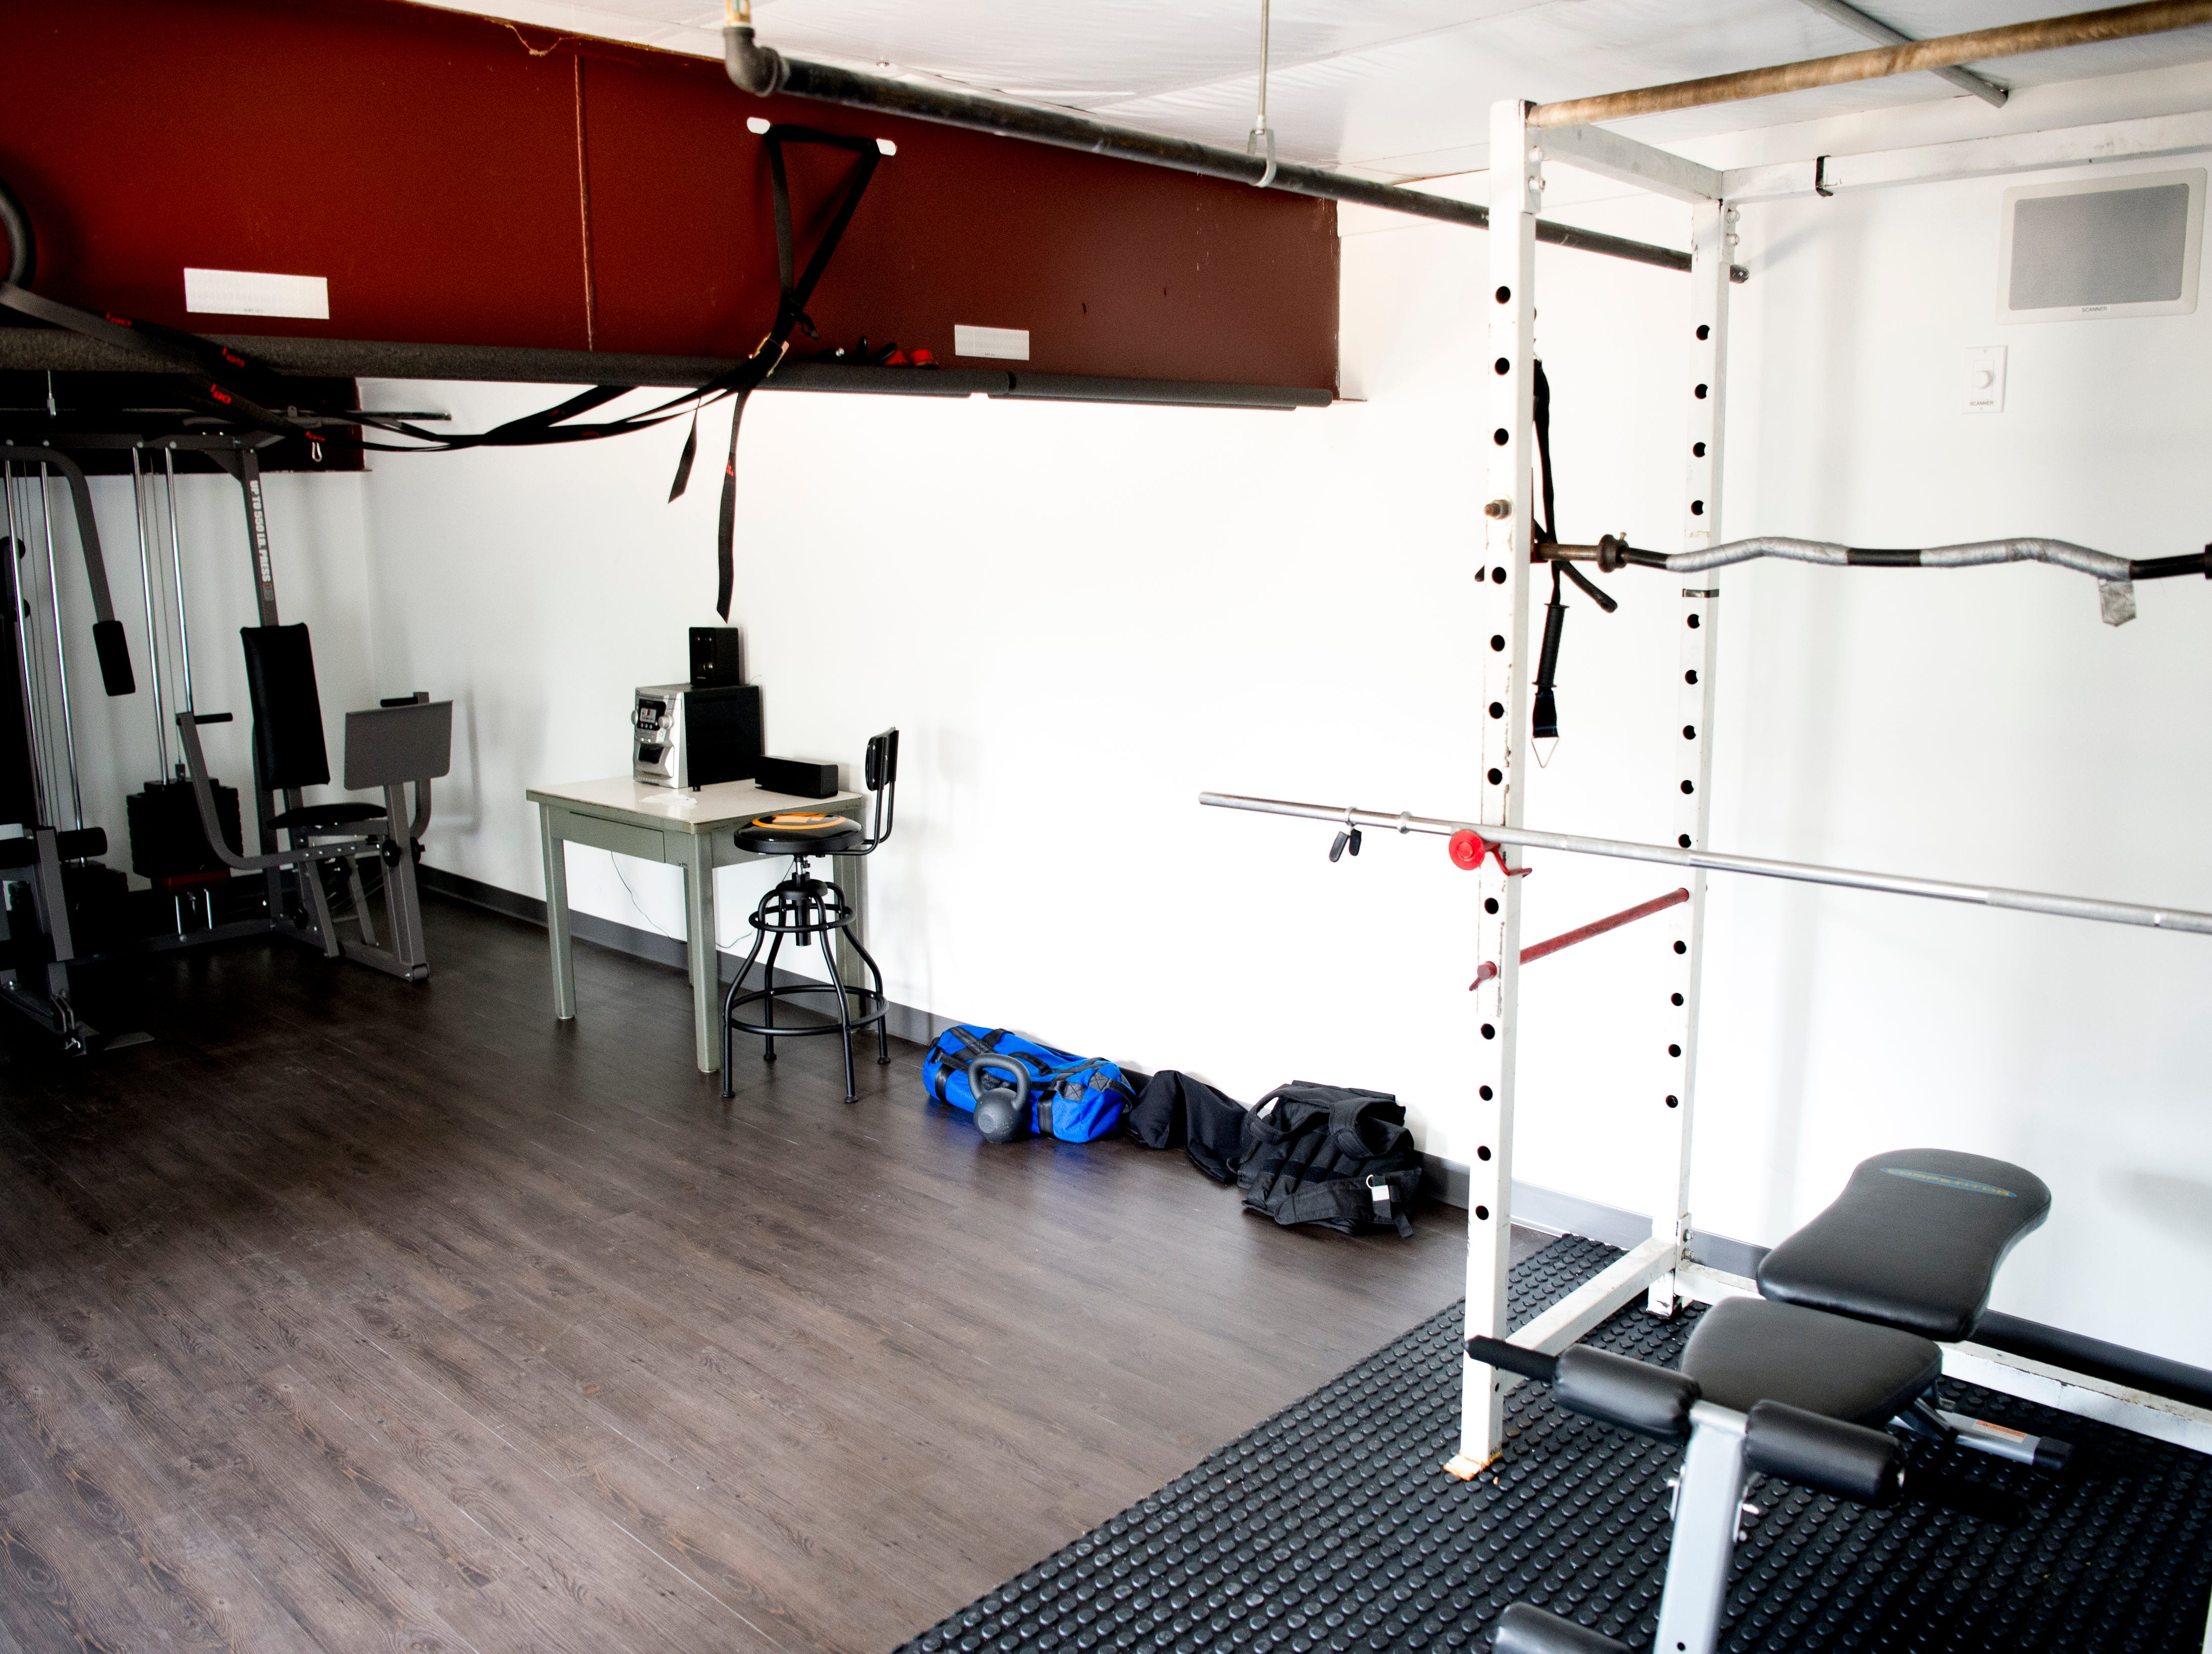 A gym area upstairs at the new Rural Metro Fire Station 36, 7615 Norman Jack Lane, in Powell, Tennessee on Wednesday, March 13, 2019. The station has been operational since early February and is hosting an open house and grand opening March 14 from 10am-7pm.